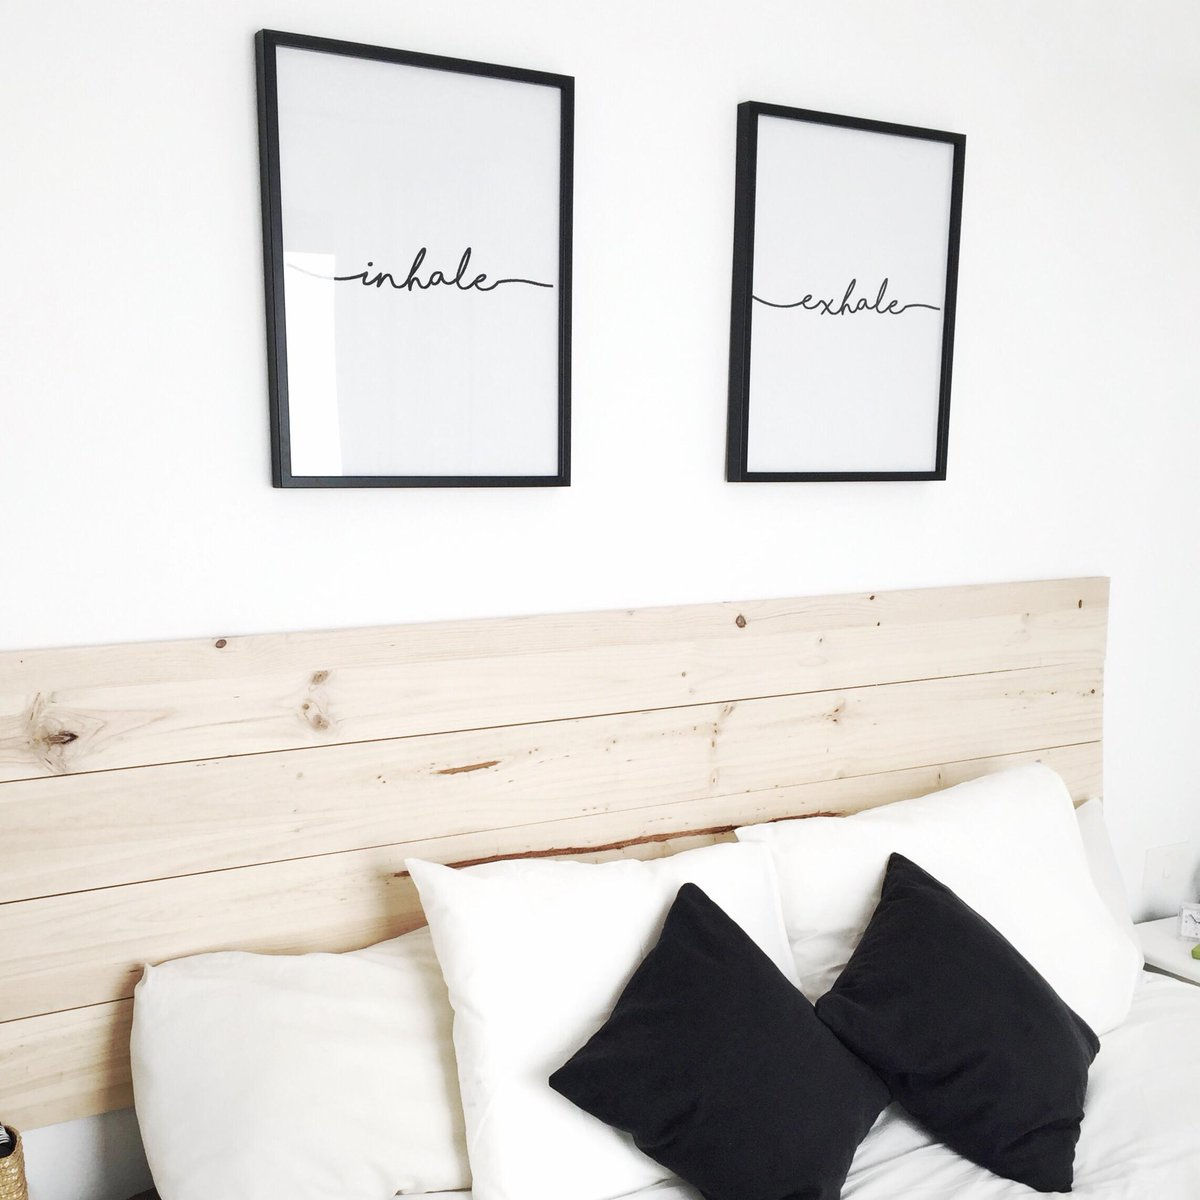 Mattress Firm On Twitter Reduce Reuse Recycle Make Your Old Headboard New Again With These Easy Diy Projects Https T Co Sz3tg7ay7l